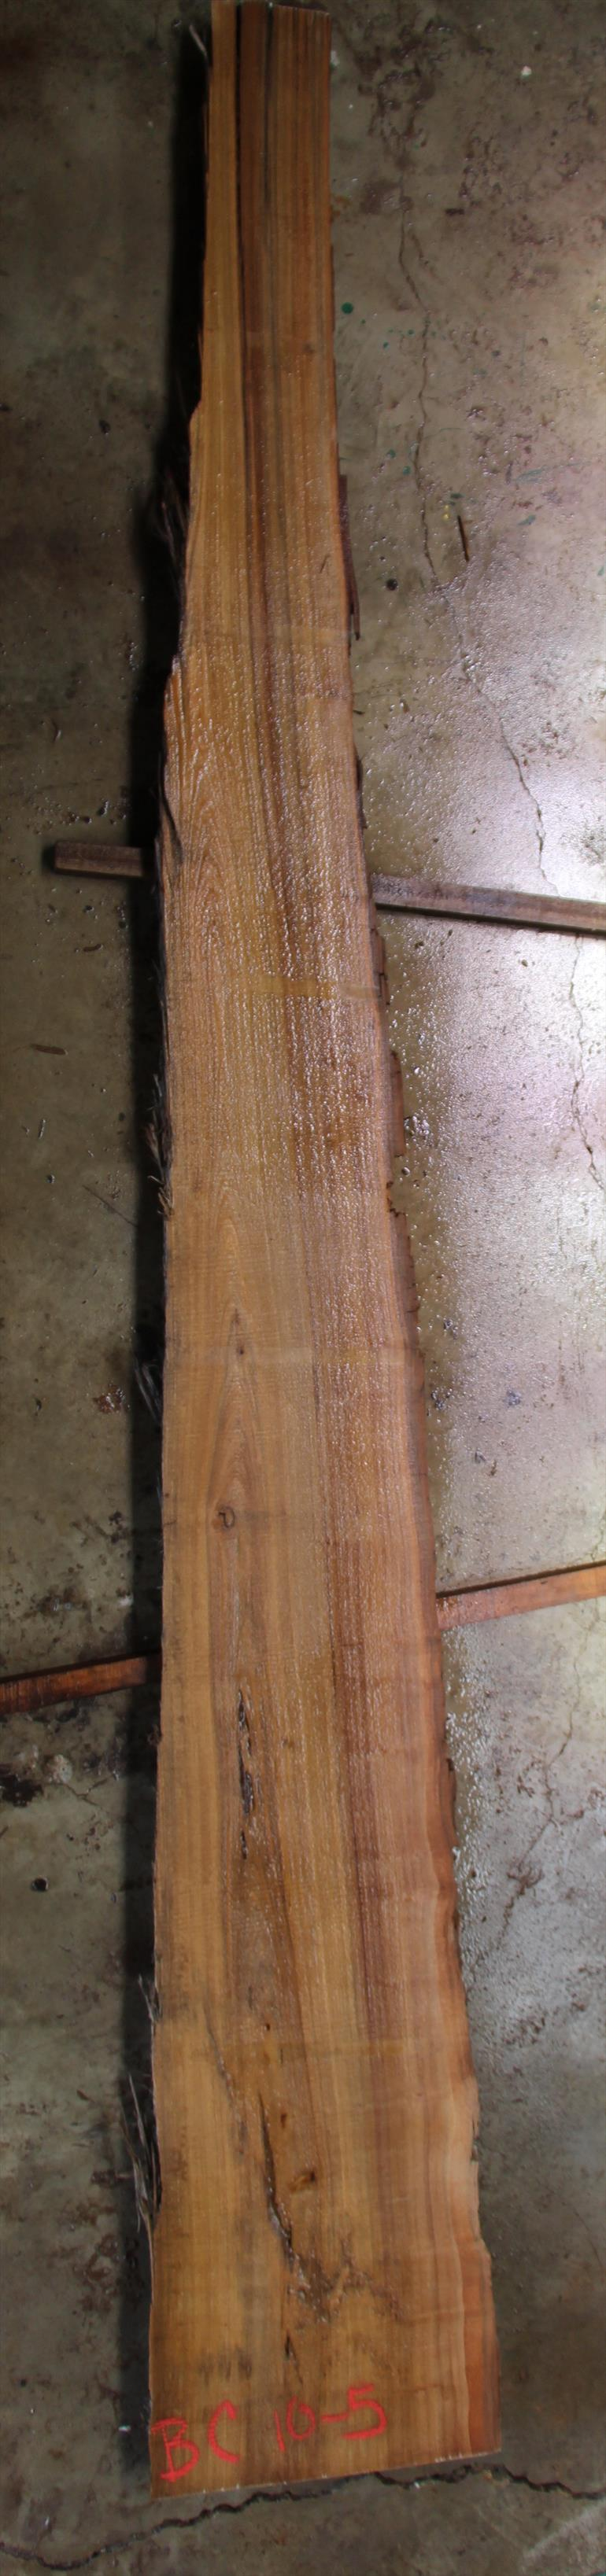 Krantz recovered woods buried cypress slab bc010 05 for Cypress log home prices